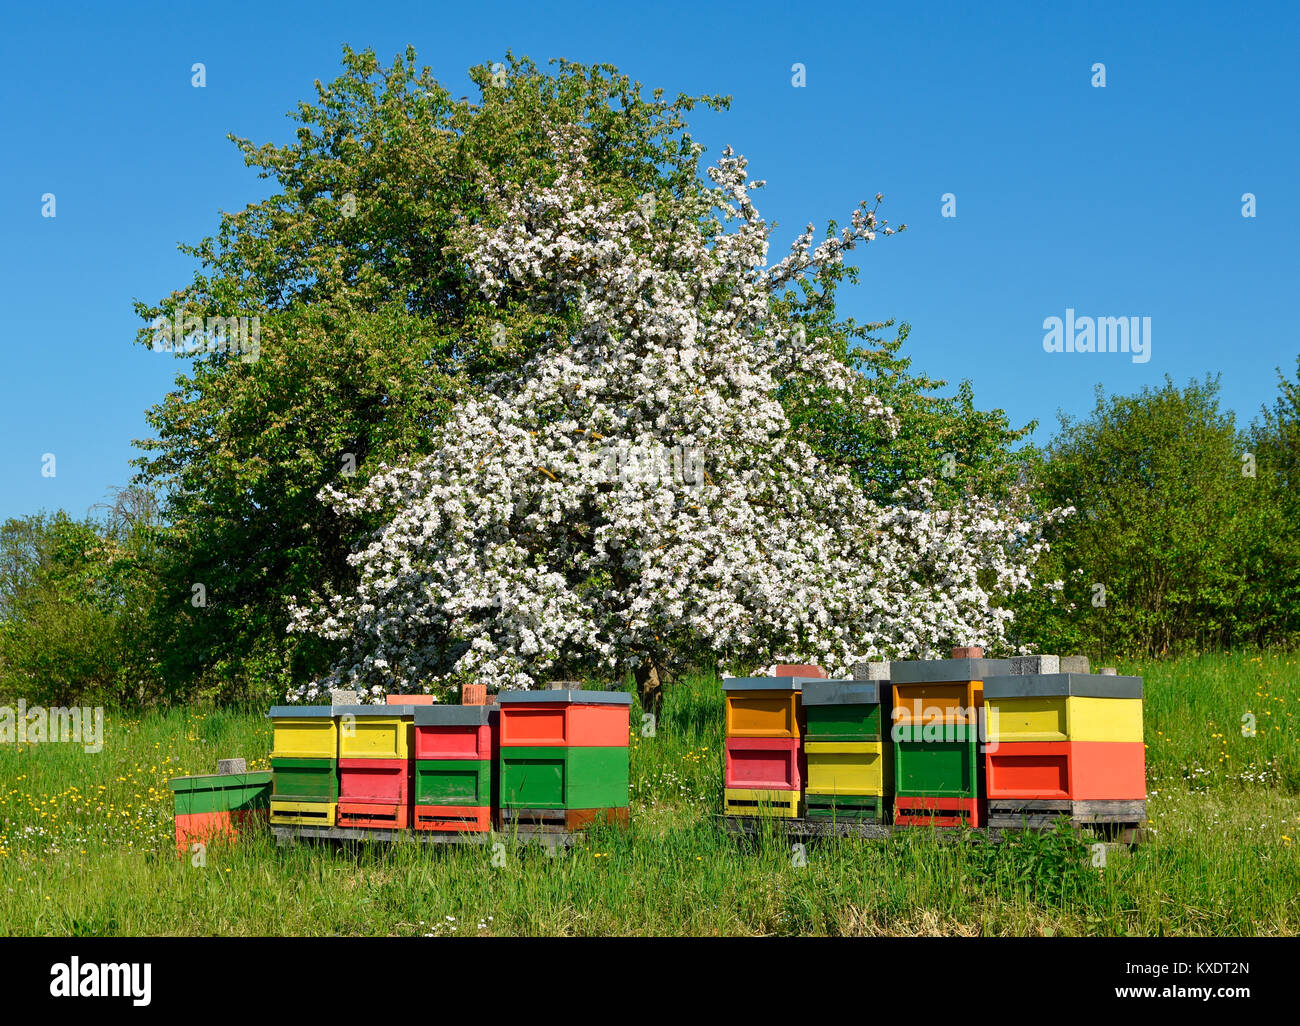 Bee hives in front of a blooming fruit tree, Baden-Württemberg, Germany - Stock Image